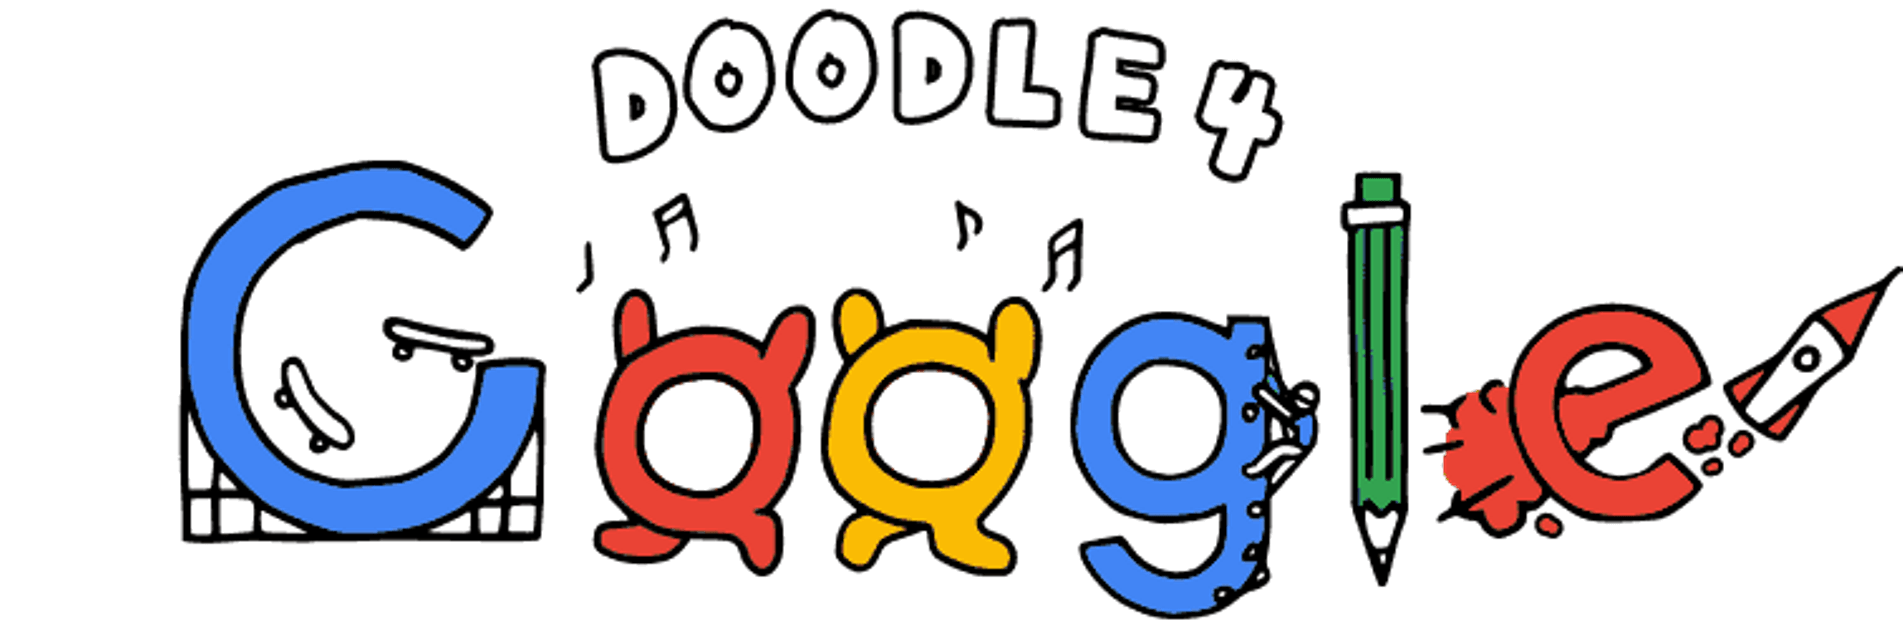 Googlr drawing doodle 4 google. Contest asks students